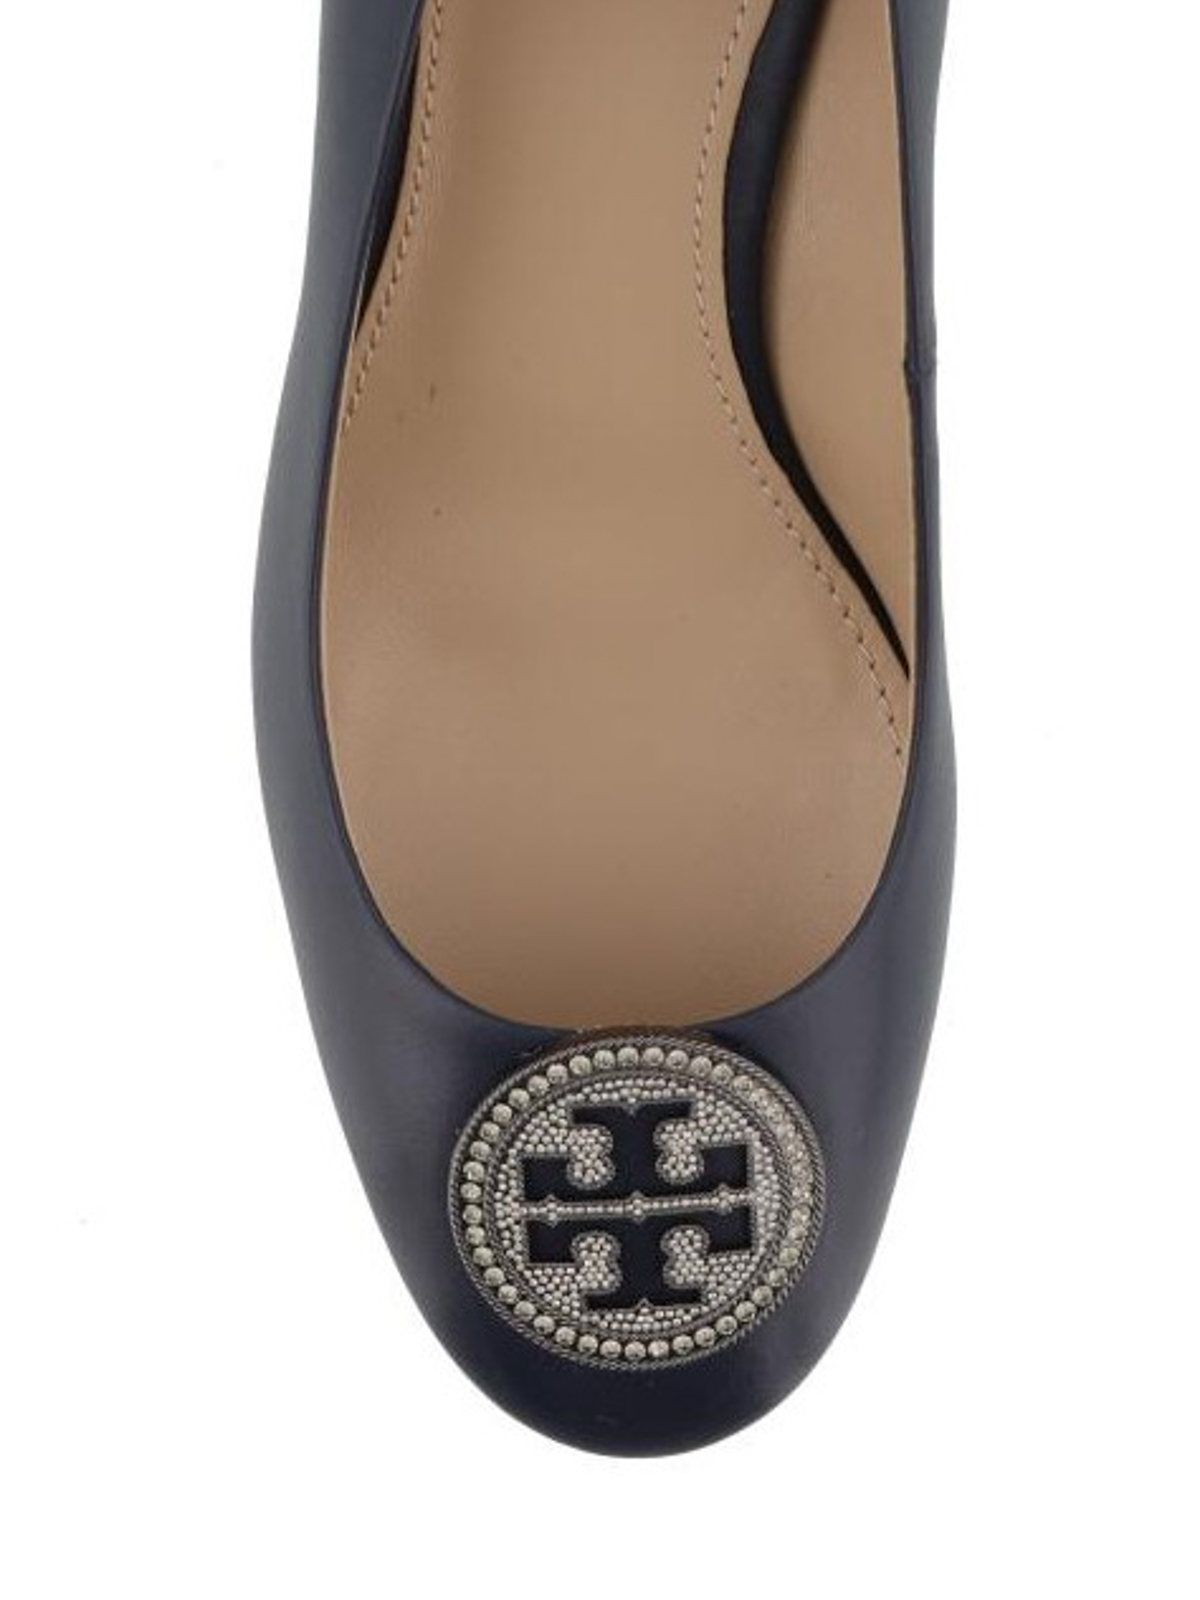 e2c4e4b060a Tory Burch - Liana blue leather pumps - court shoes - 46258 403